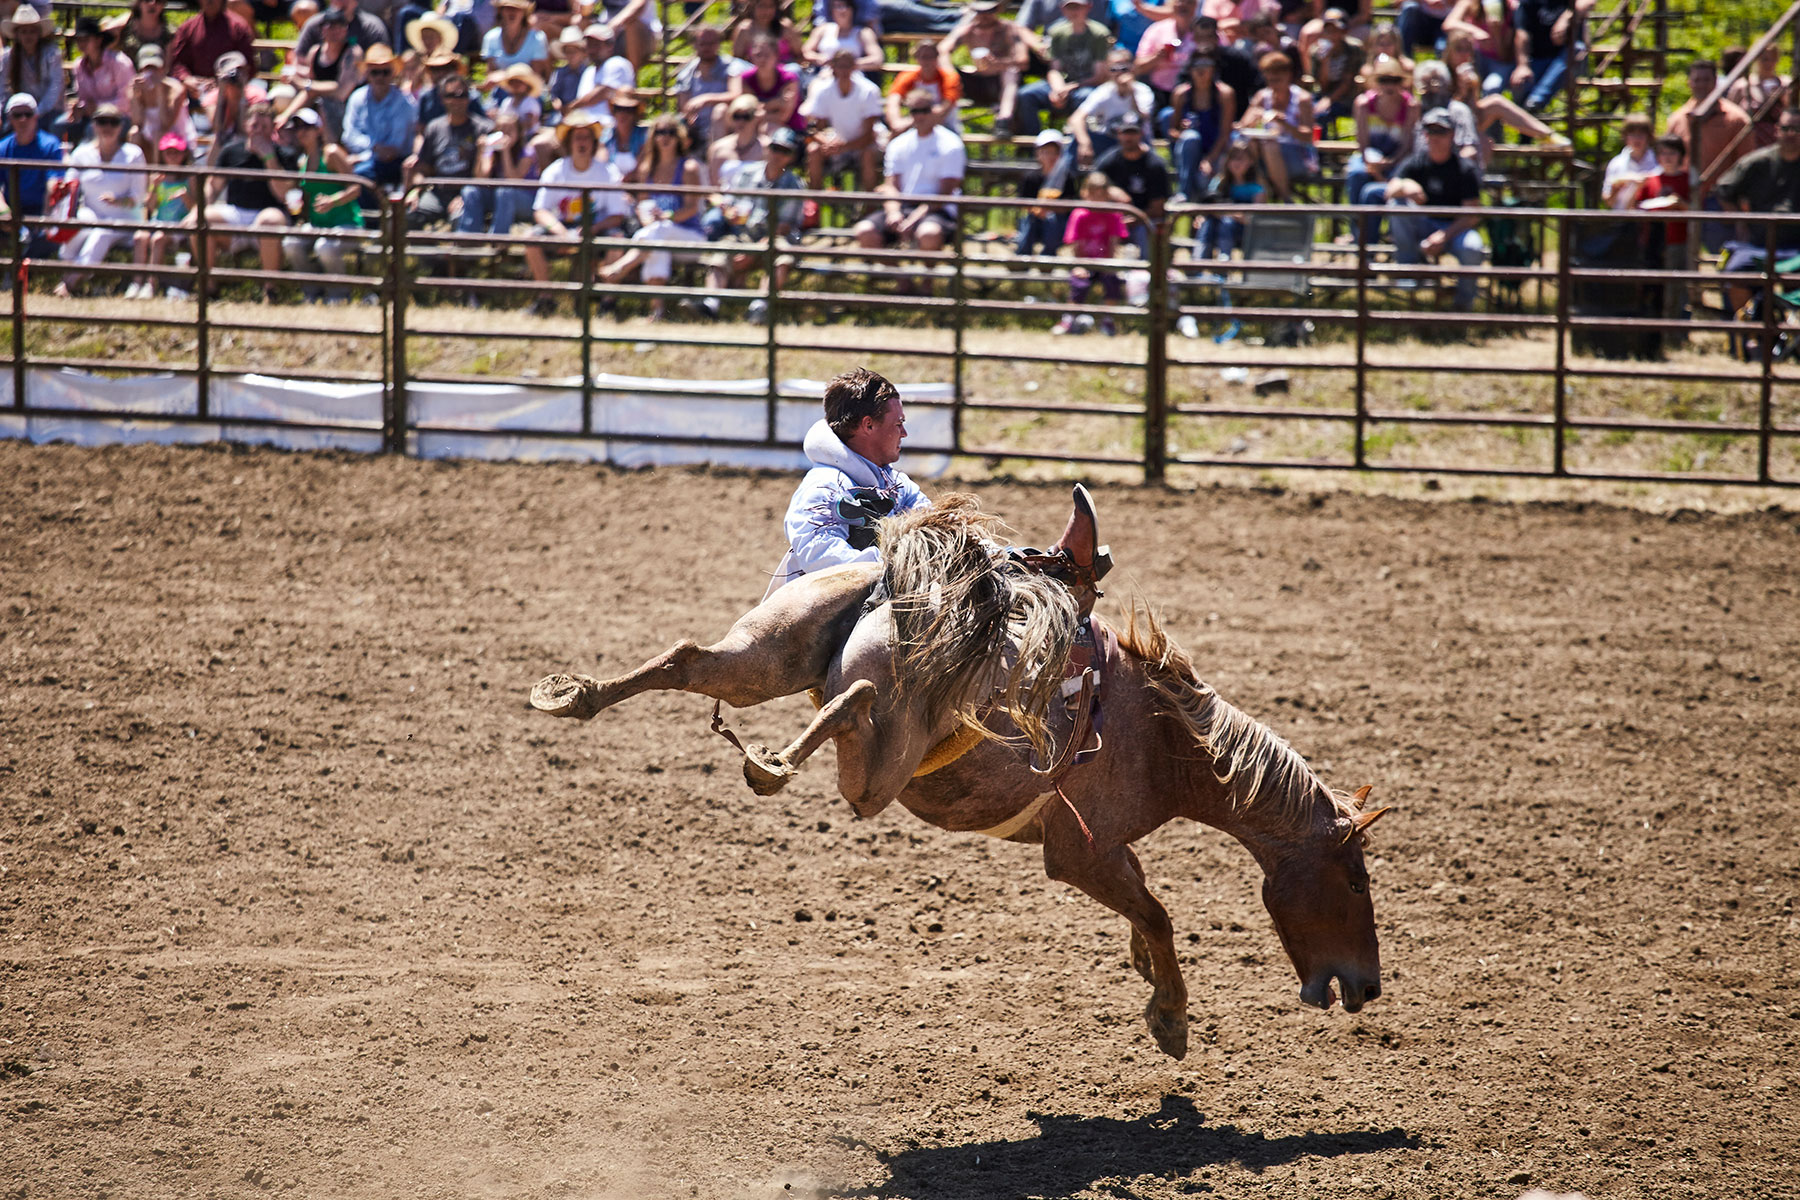 Matt Hoover Photography Kansas City Missouri Rodeo